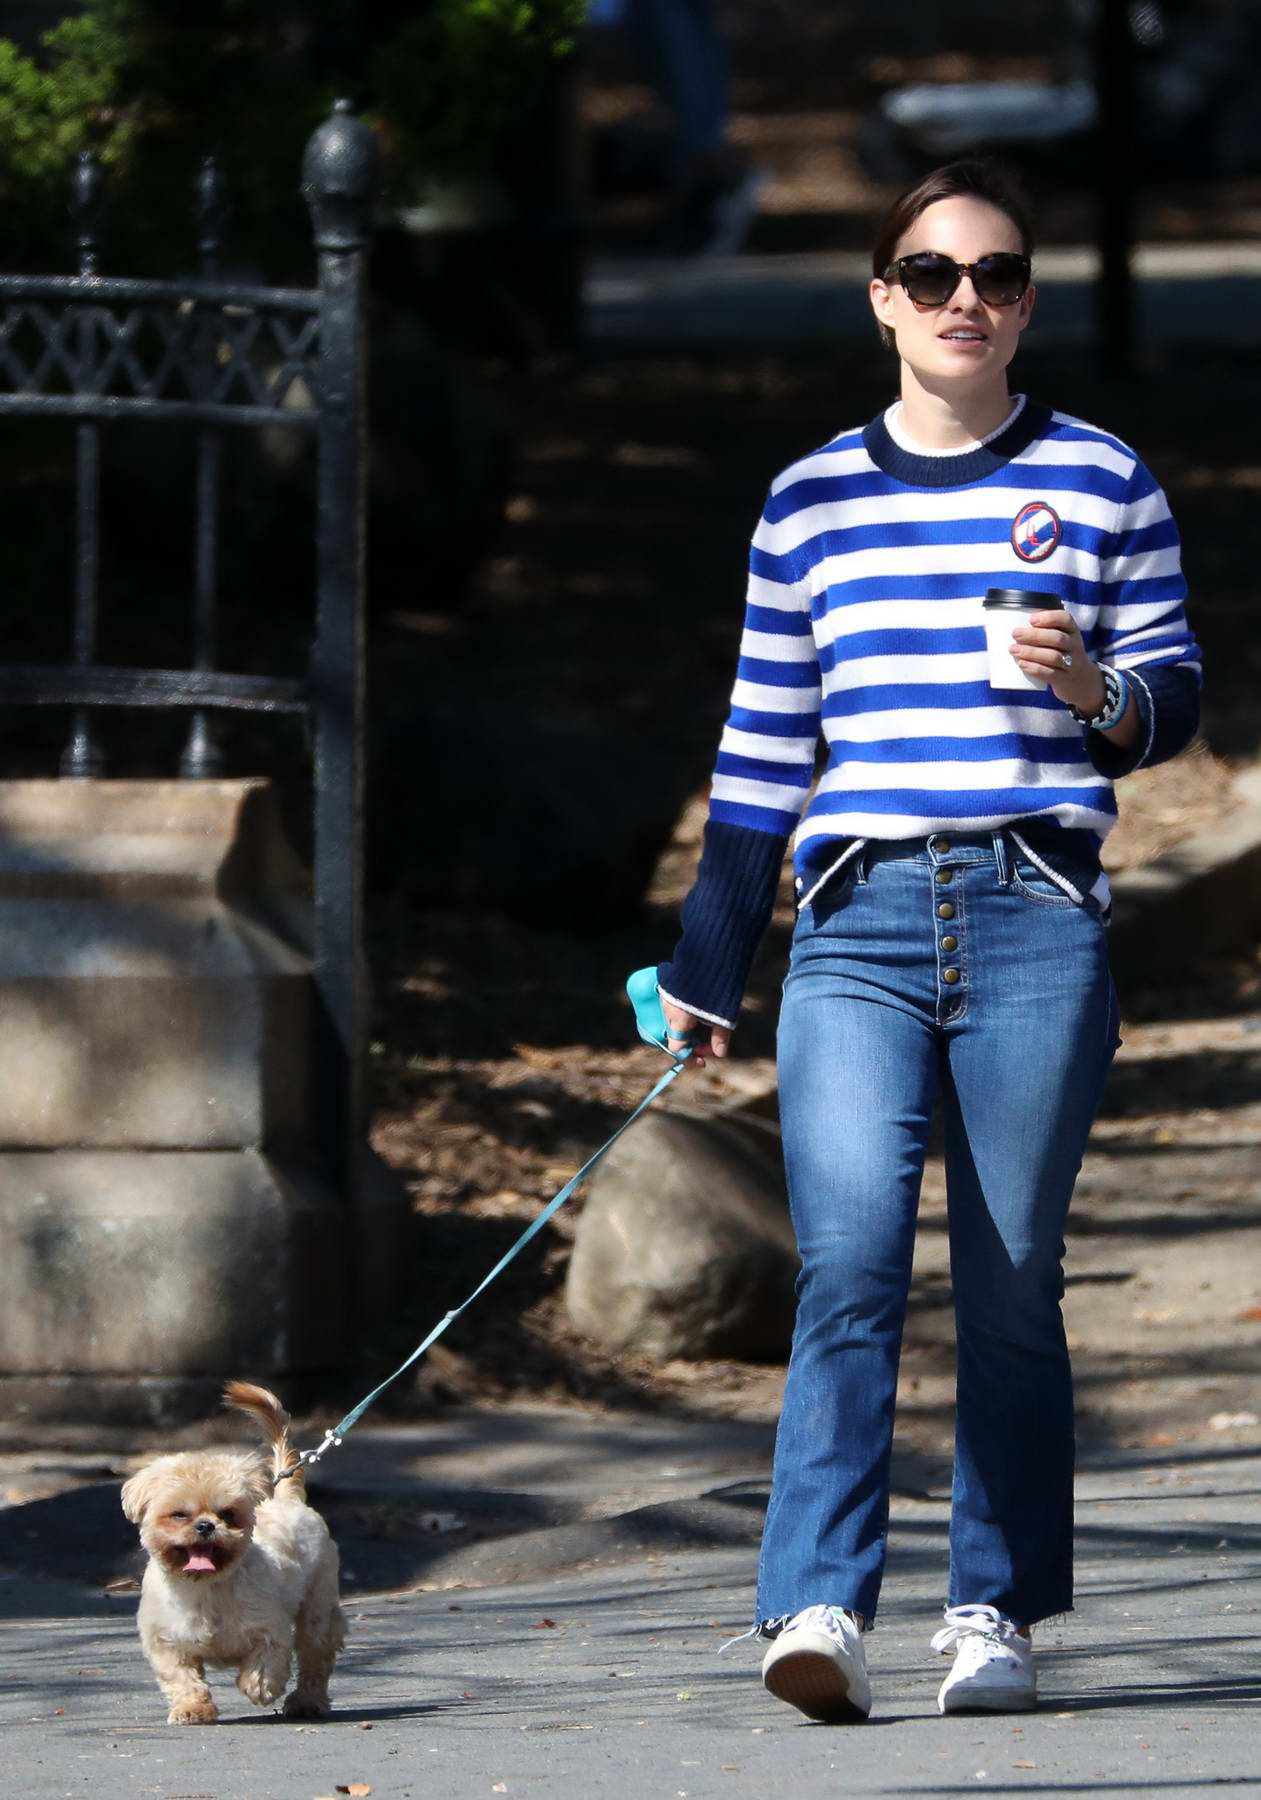 Olivia Wilde is spotted walking her dog with a friend in New York City